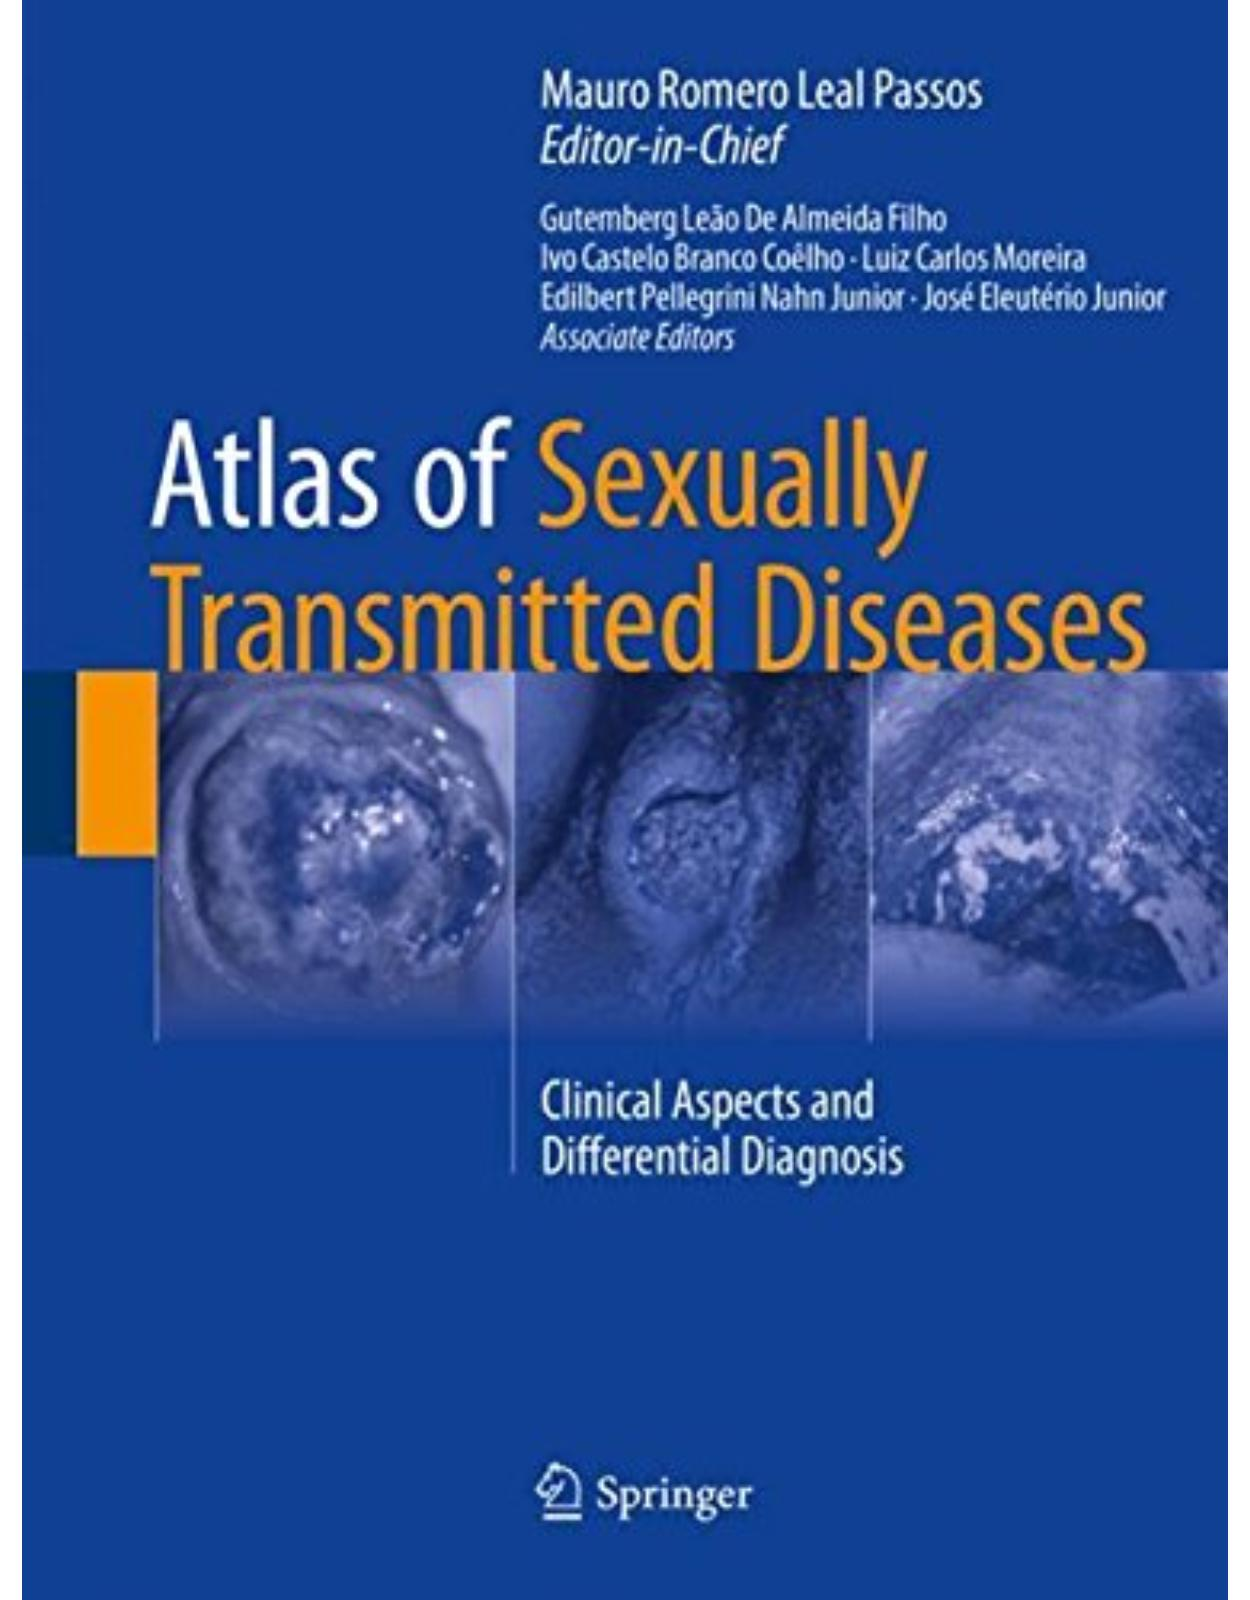 Atlas of Sexually Transmitted Diseases: Clinical Aspects and Differential Diagnosis